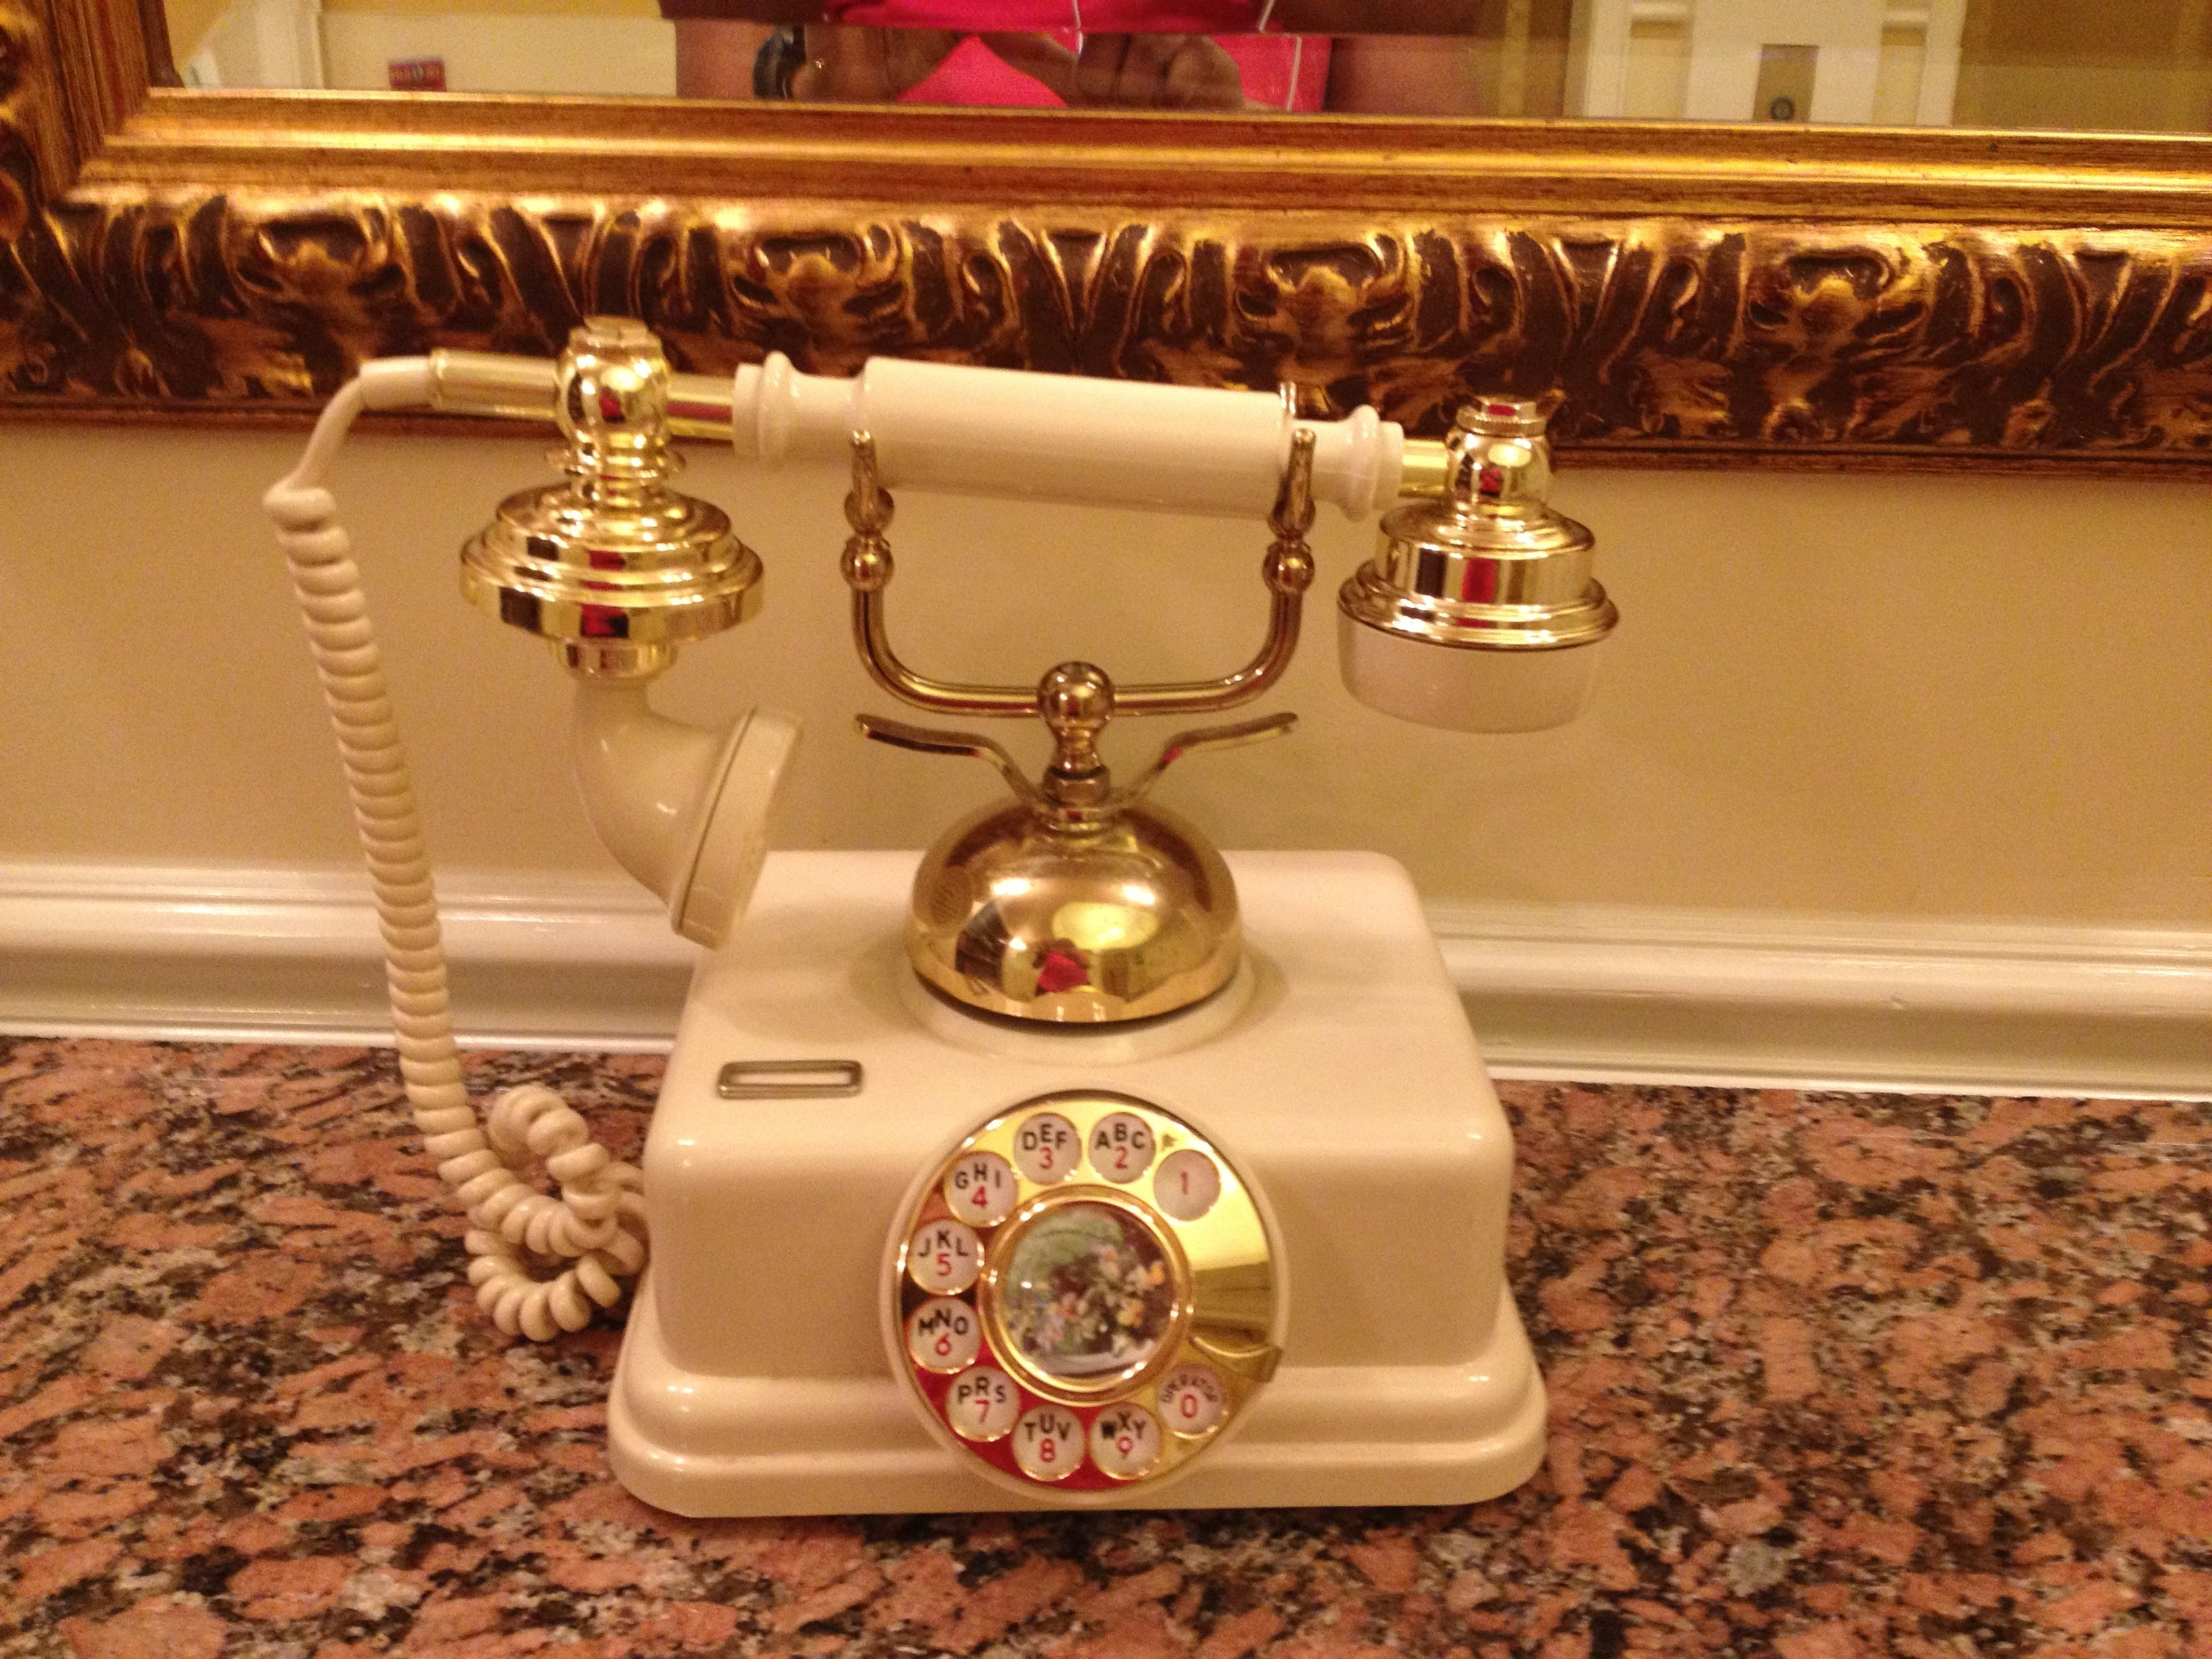 Free stock photo of old school telephone